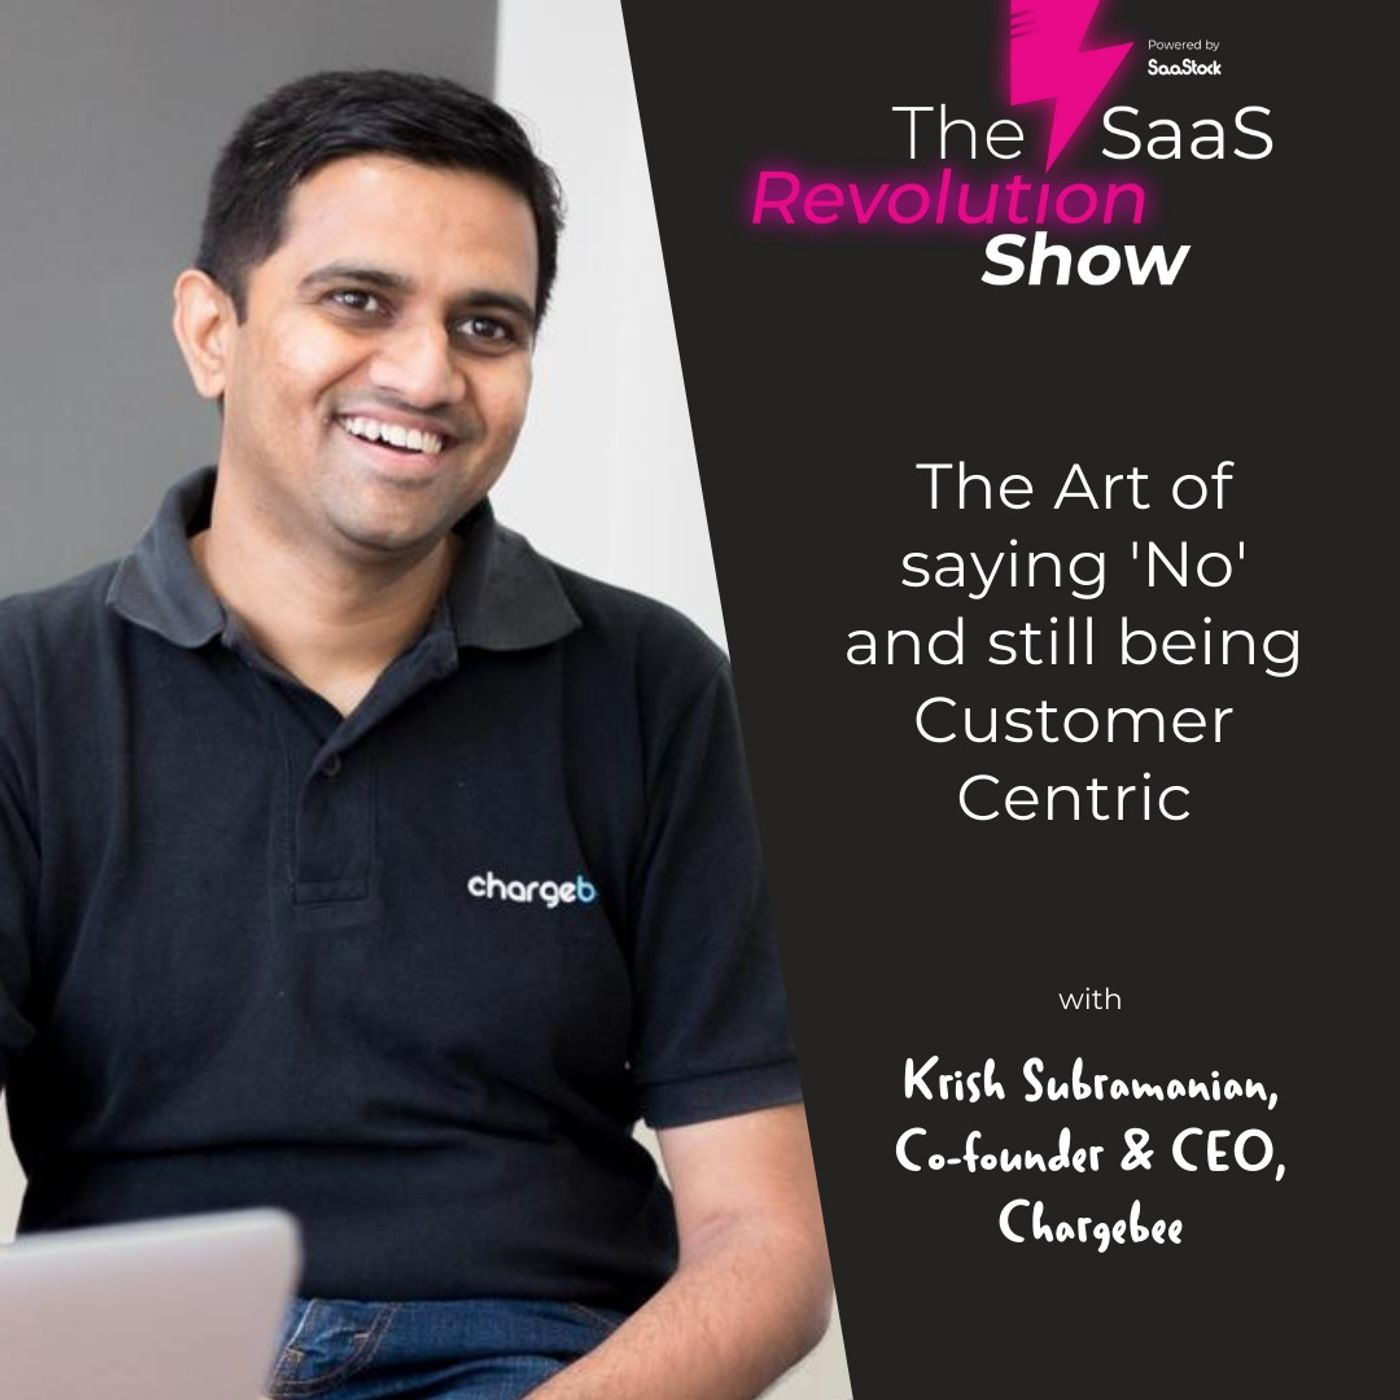 The Art of saying 'No' and still being Customer Centric